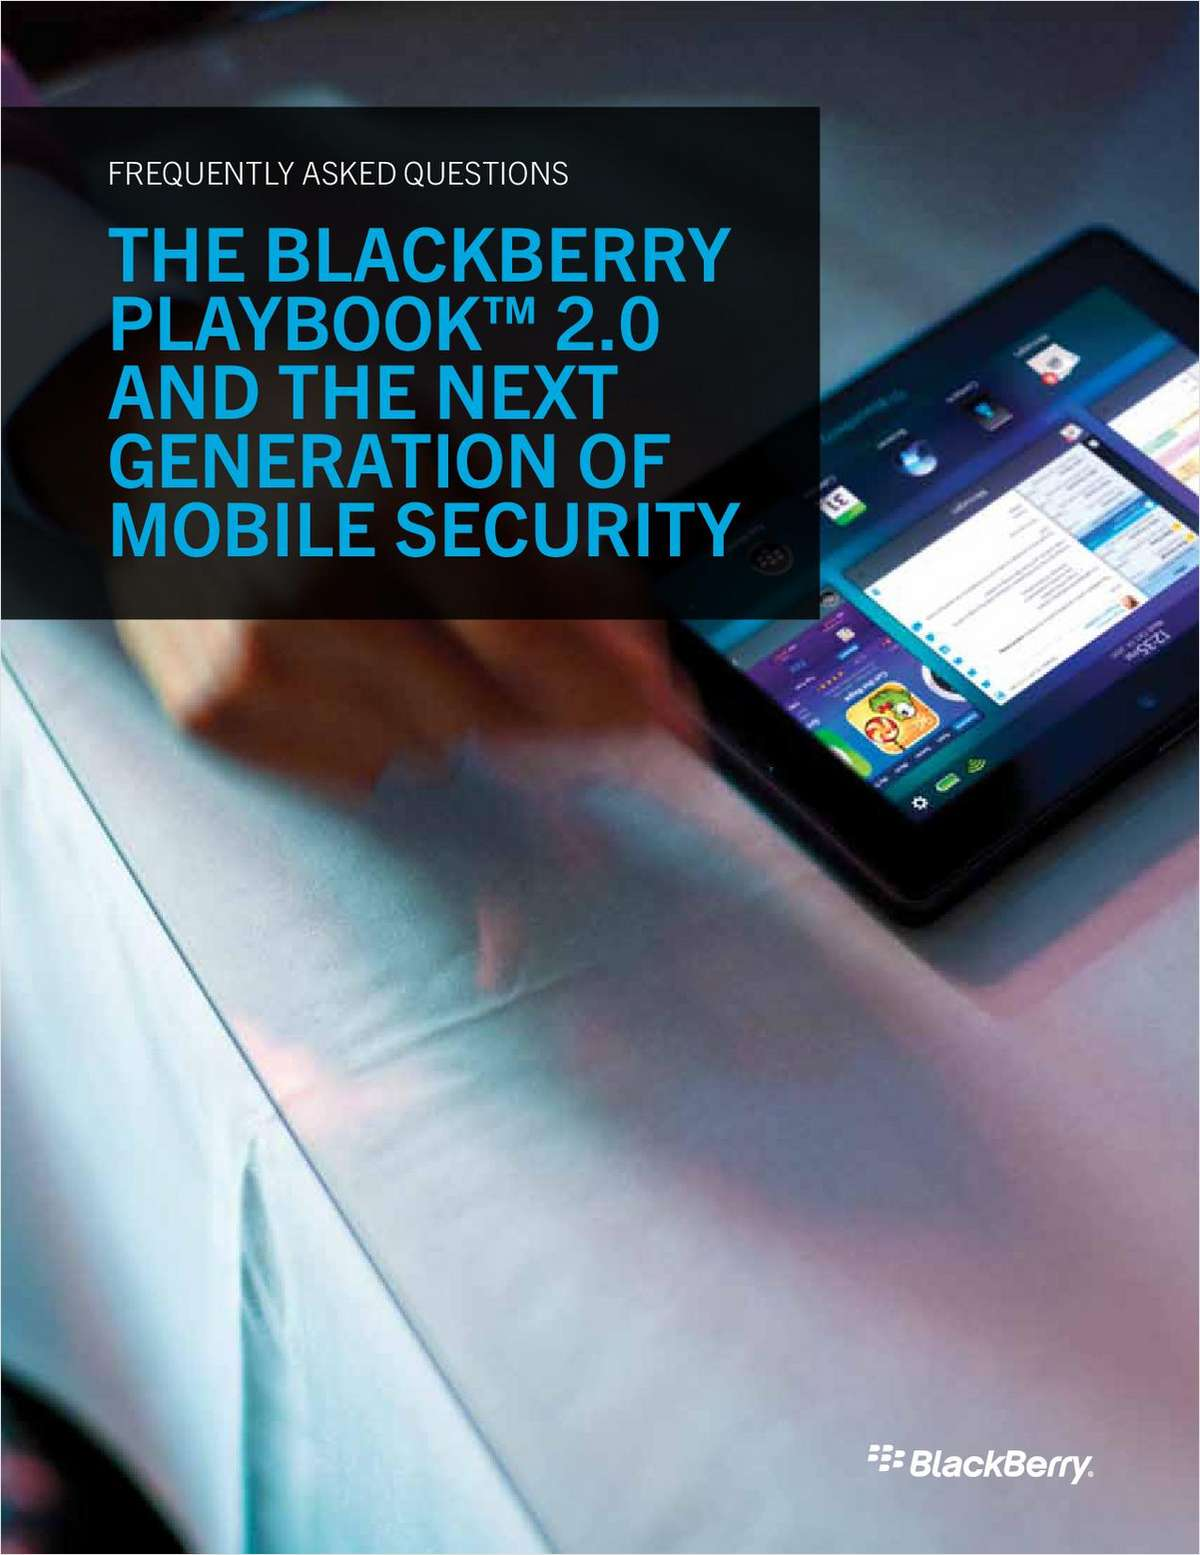 The BlackBerry PlayBook 2.0 and the Next Generation of Mobile Security